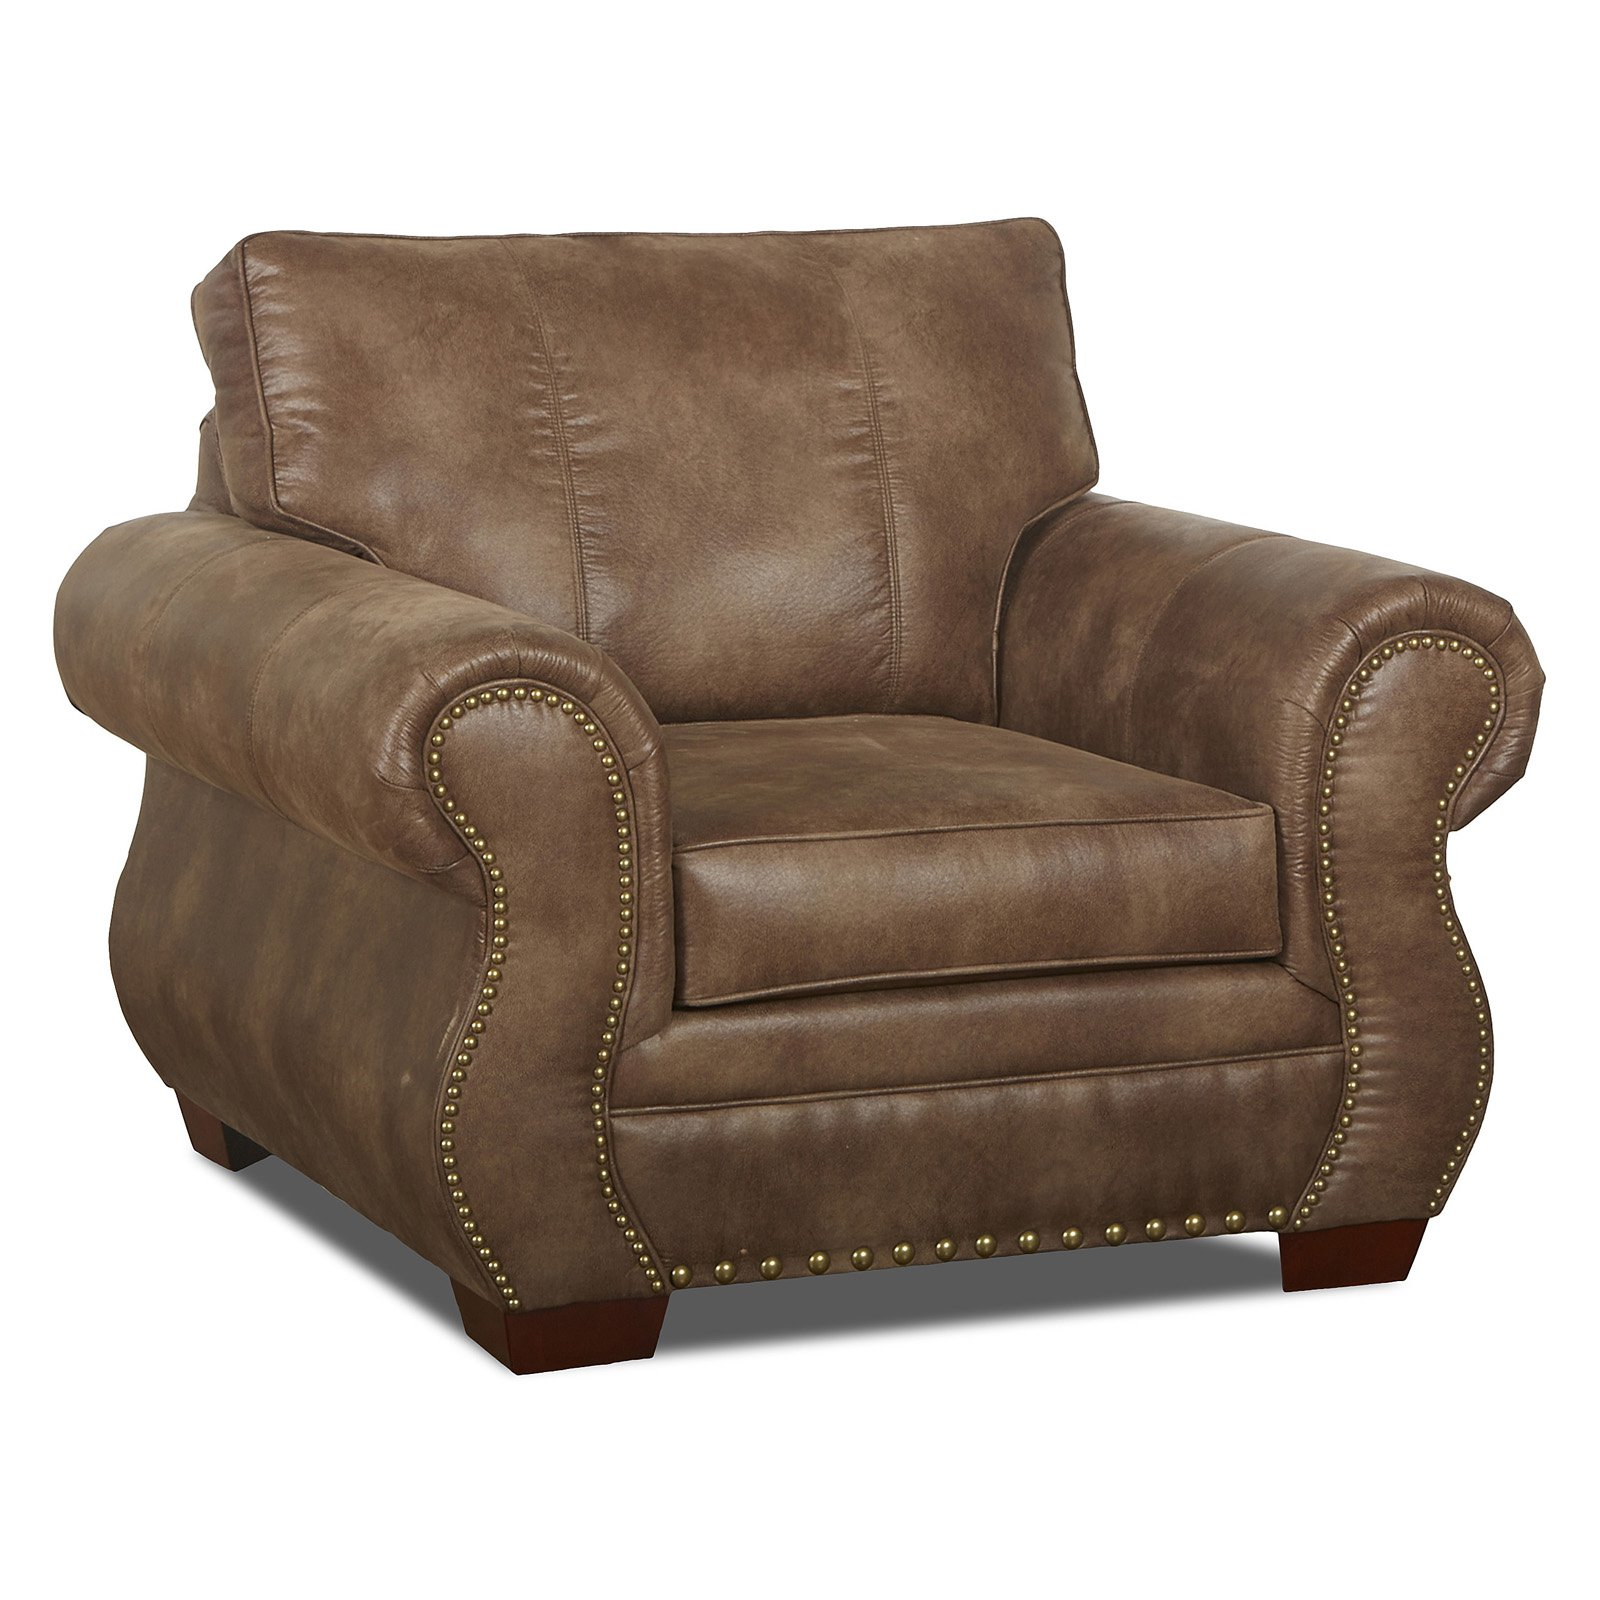 Klaussner Blackburn Club Chair by Klaussner Furniture Industries